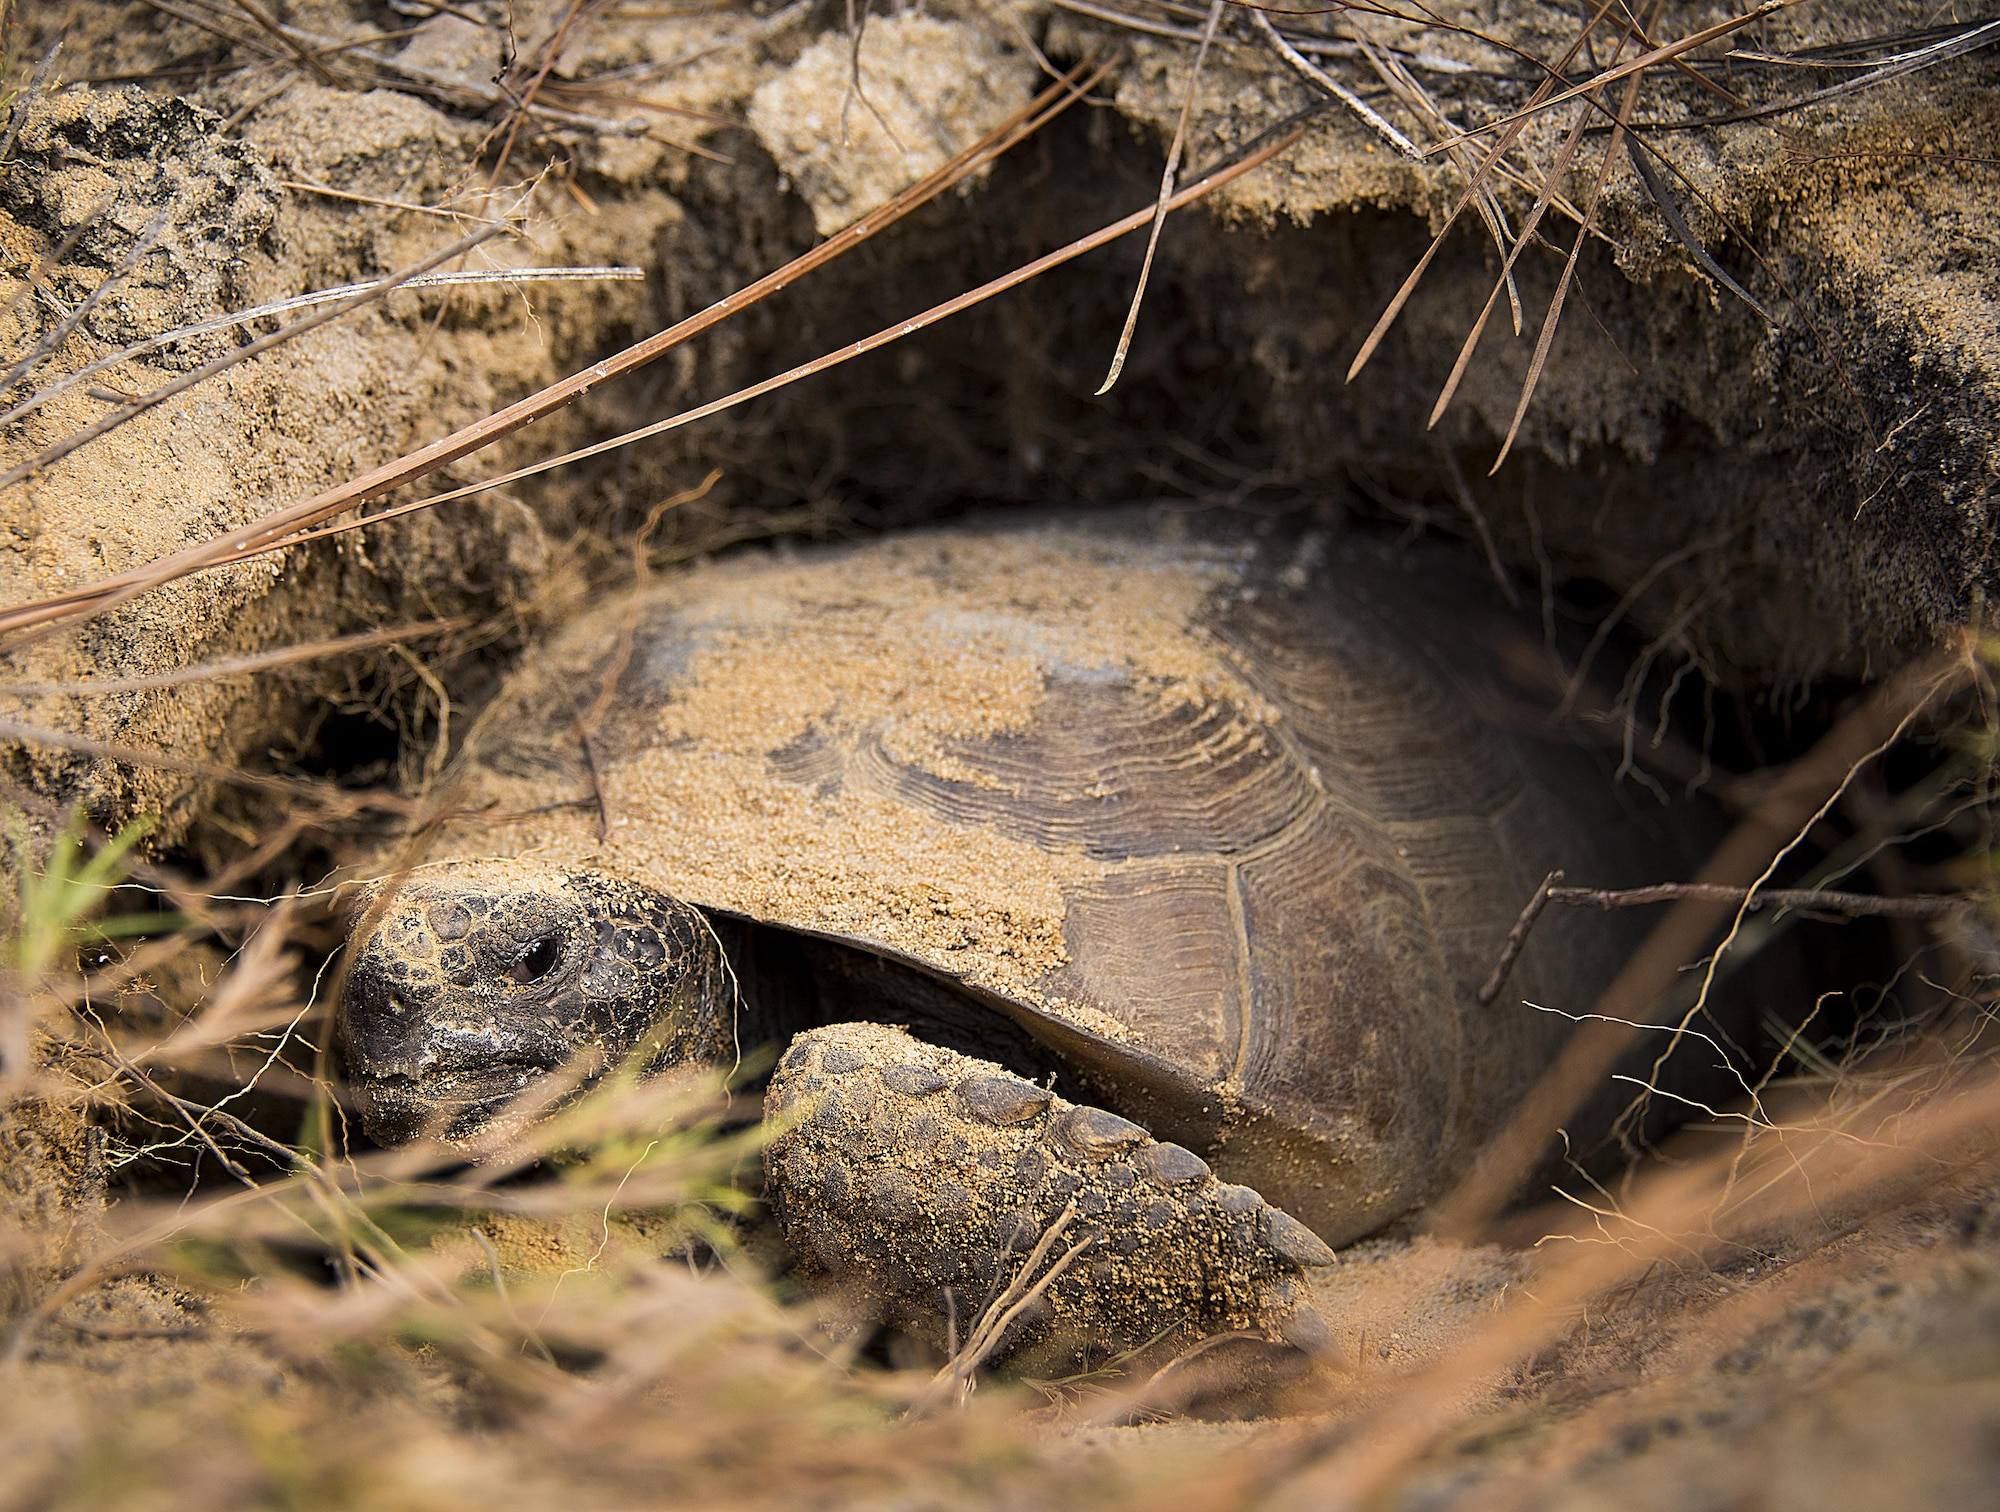 A gopher tortoise settles into its new burrow deep within the Eglin Air Force Base range Oct. 26.  The first of approximately 250 tortoises were released into their 100-acre habitat after being rescued from urban development at their previous home in South Florida.  Increasing the gopher tortoise population here could prevent the U.S. Fish and Wildlife Service from listing the animal on the Threatened and Endangered Species list, allowing more flexibility for the military missions on Eglin. (U.S. Air Force photo/Samuel King Jr.)